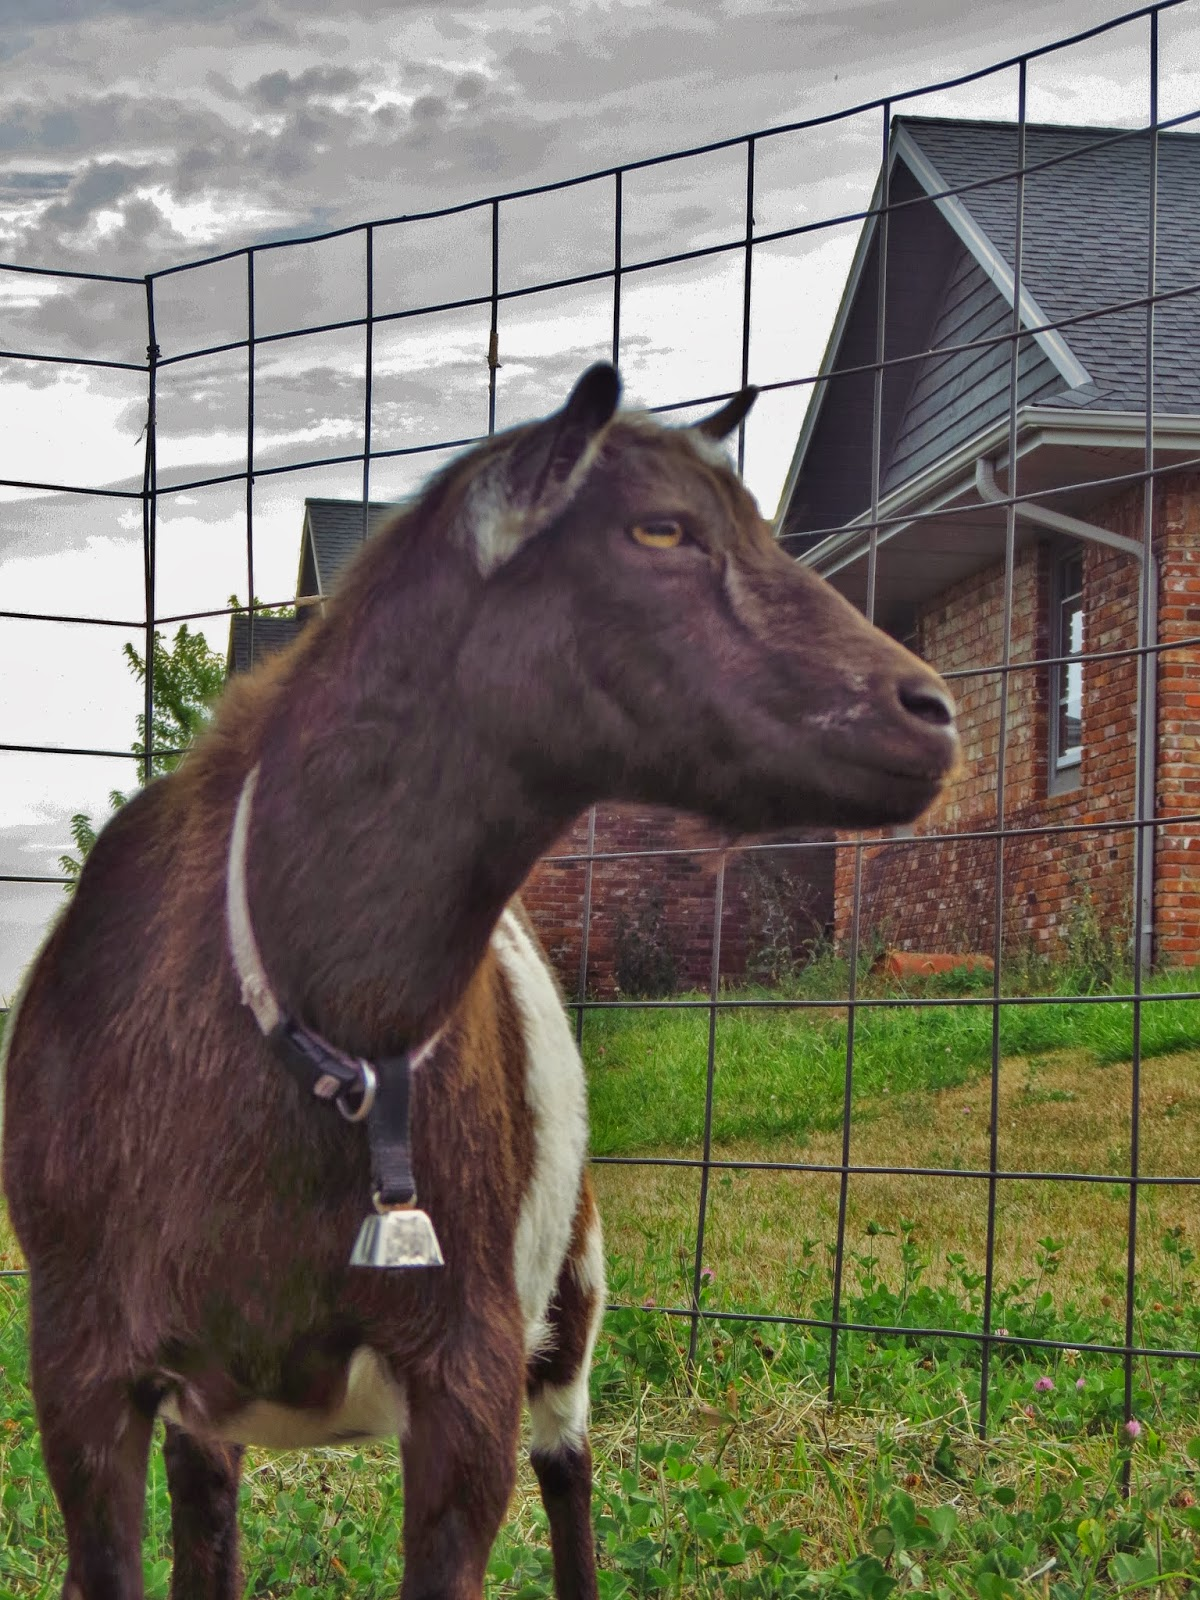 A Goat S Journey Over Life S: Life On A Small Acreage Goat Farm